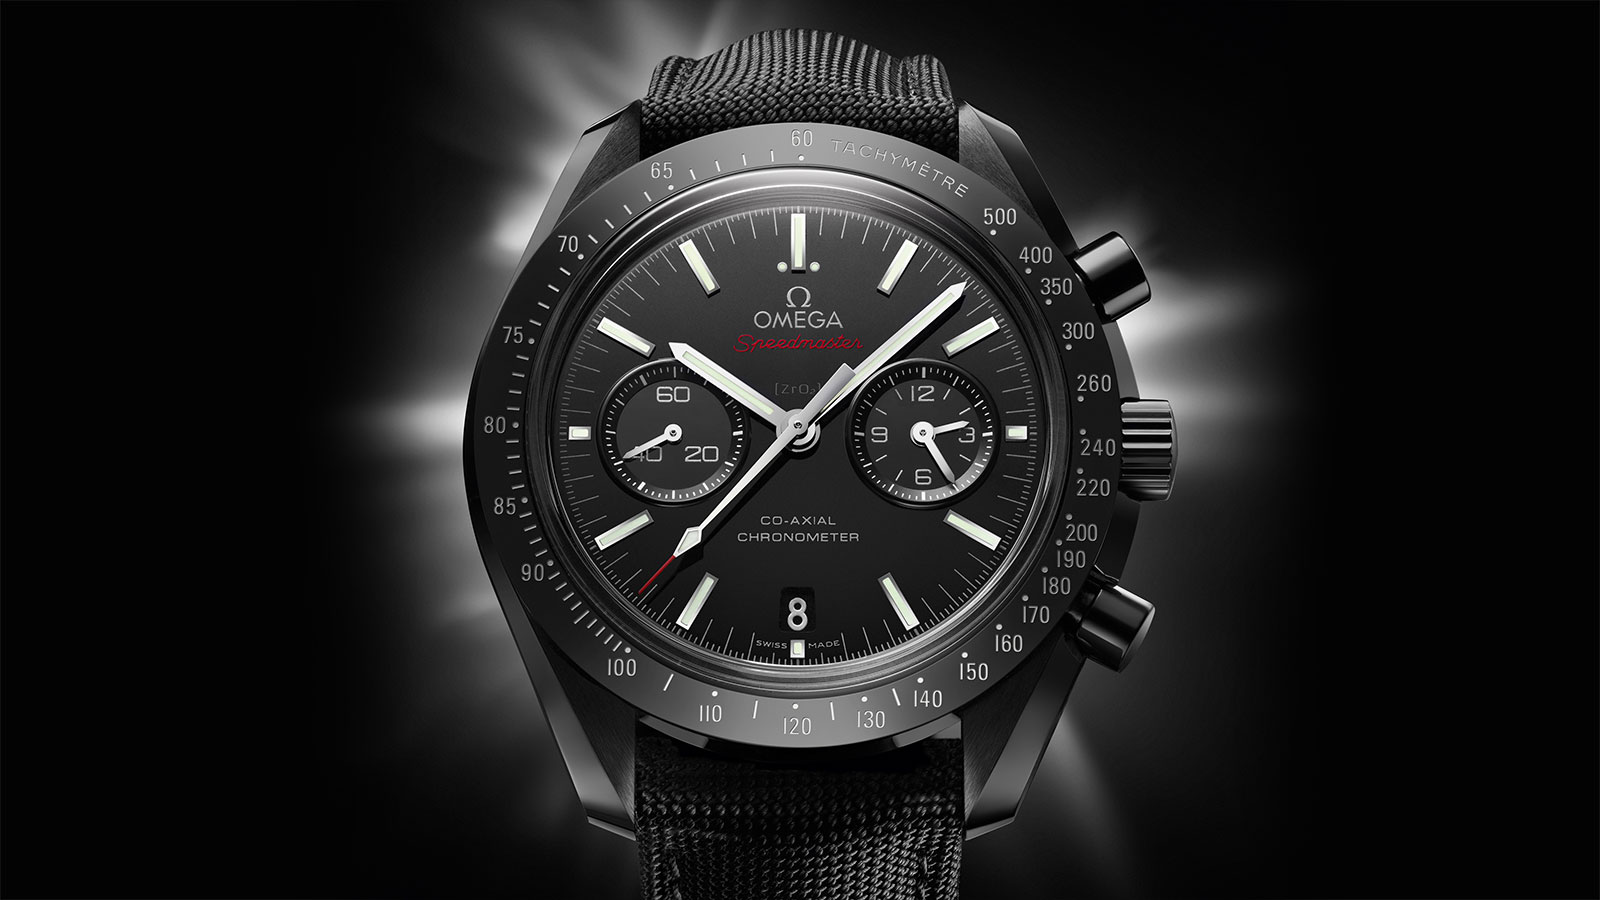 Speedmaster ムーンウォッチ Moonwatch Omega Co‑Axial Chronograph 44.25 mm ウォッチ - 311.92.44.51.01.003